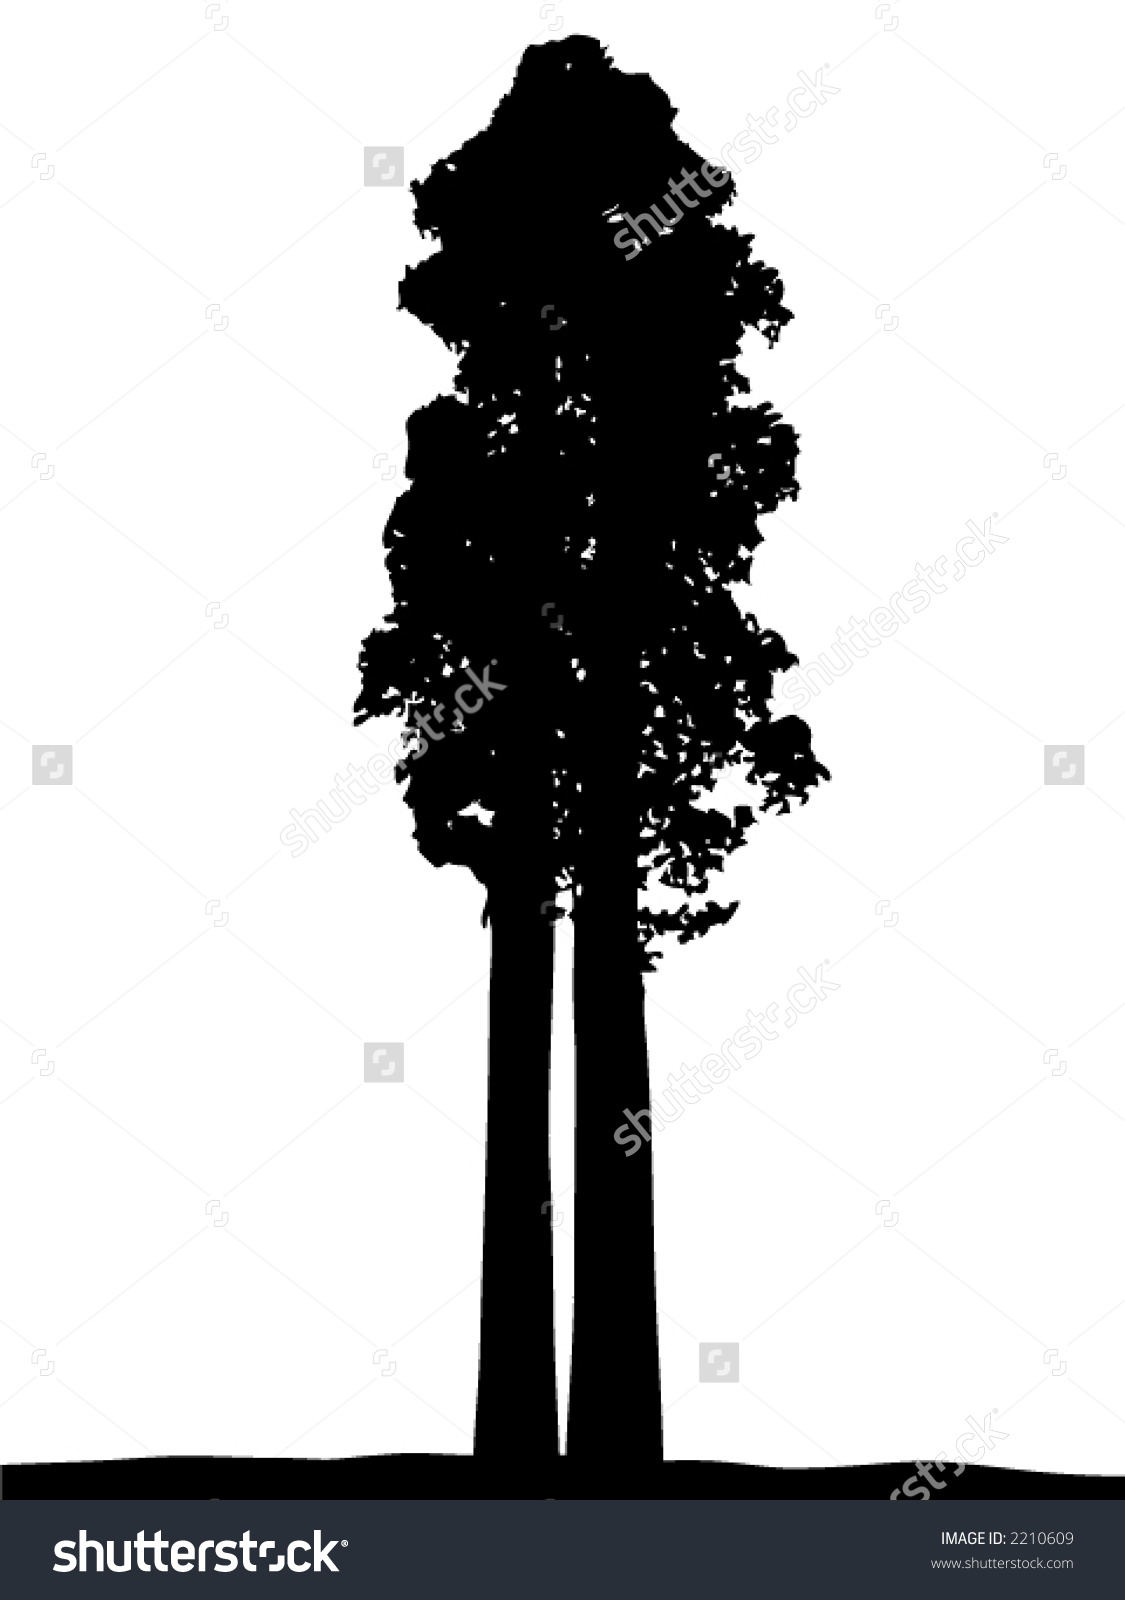 Giant Sequoia Silhouette Stock Vector 2210609.